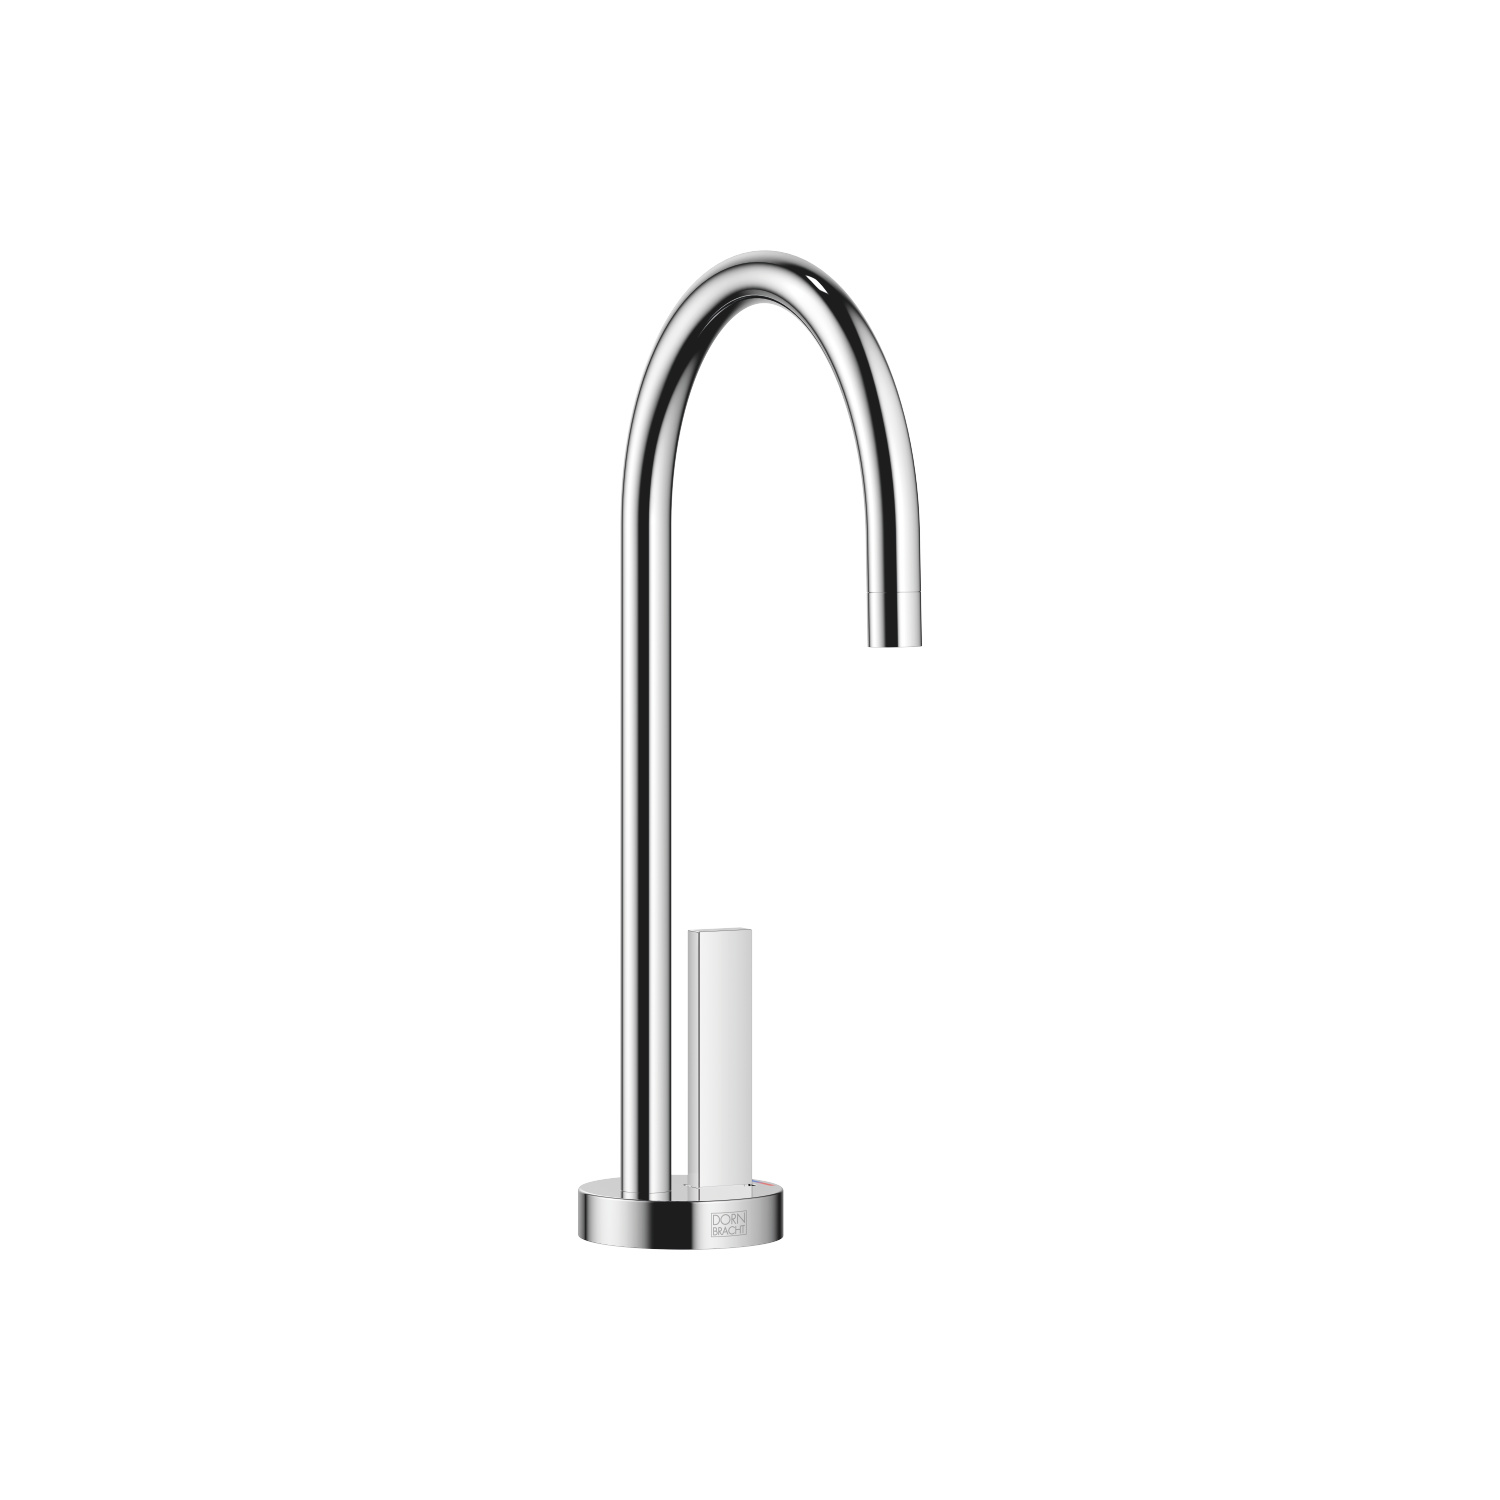 HOT & COLD WATER DISPENSER - polished chrome